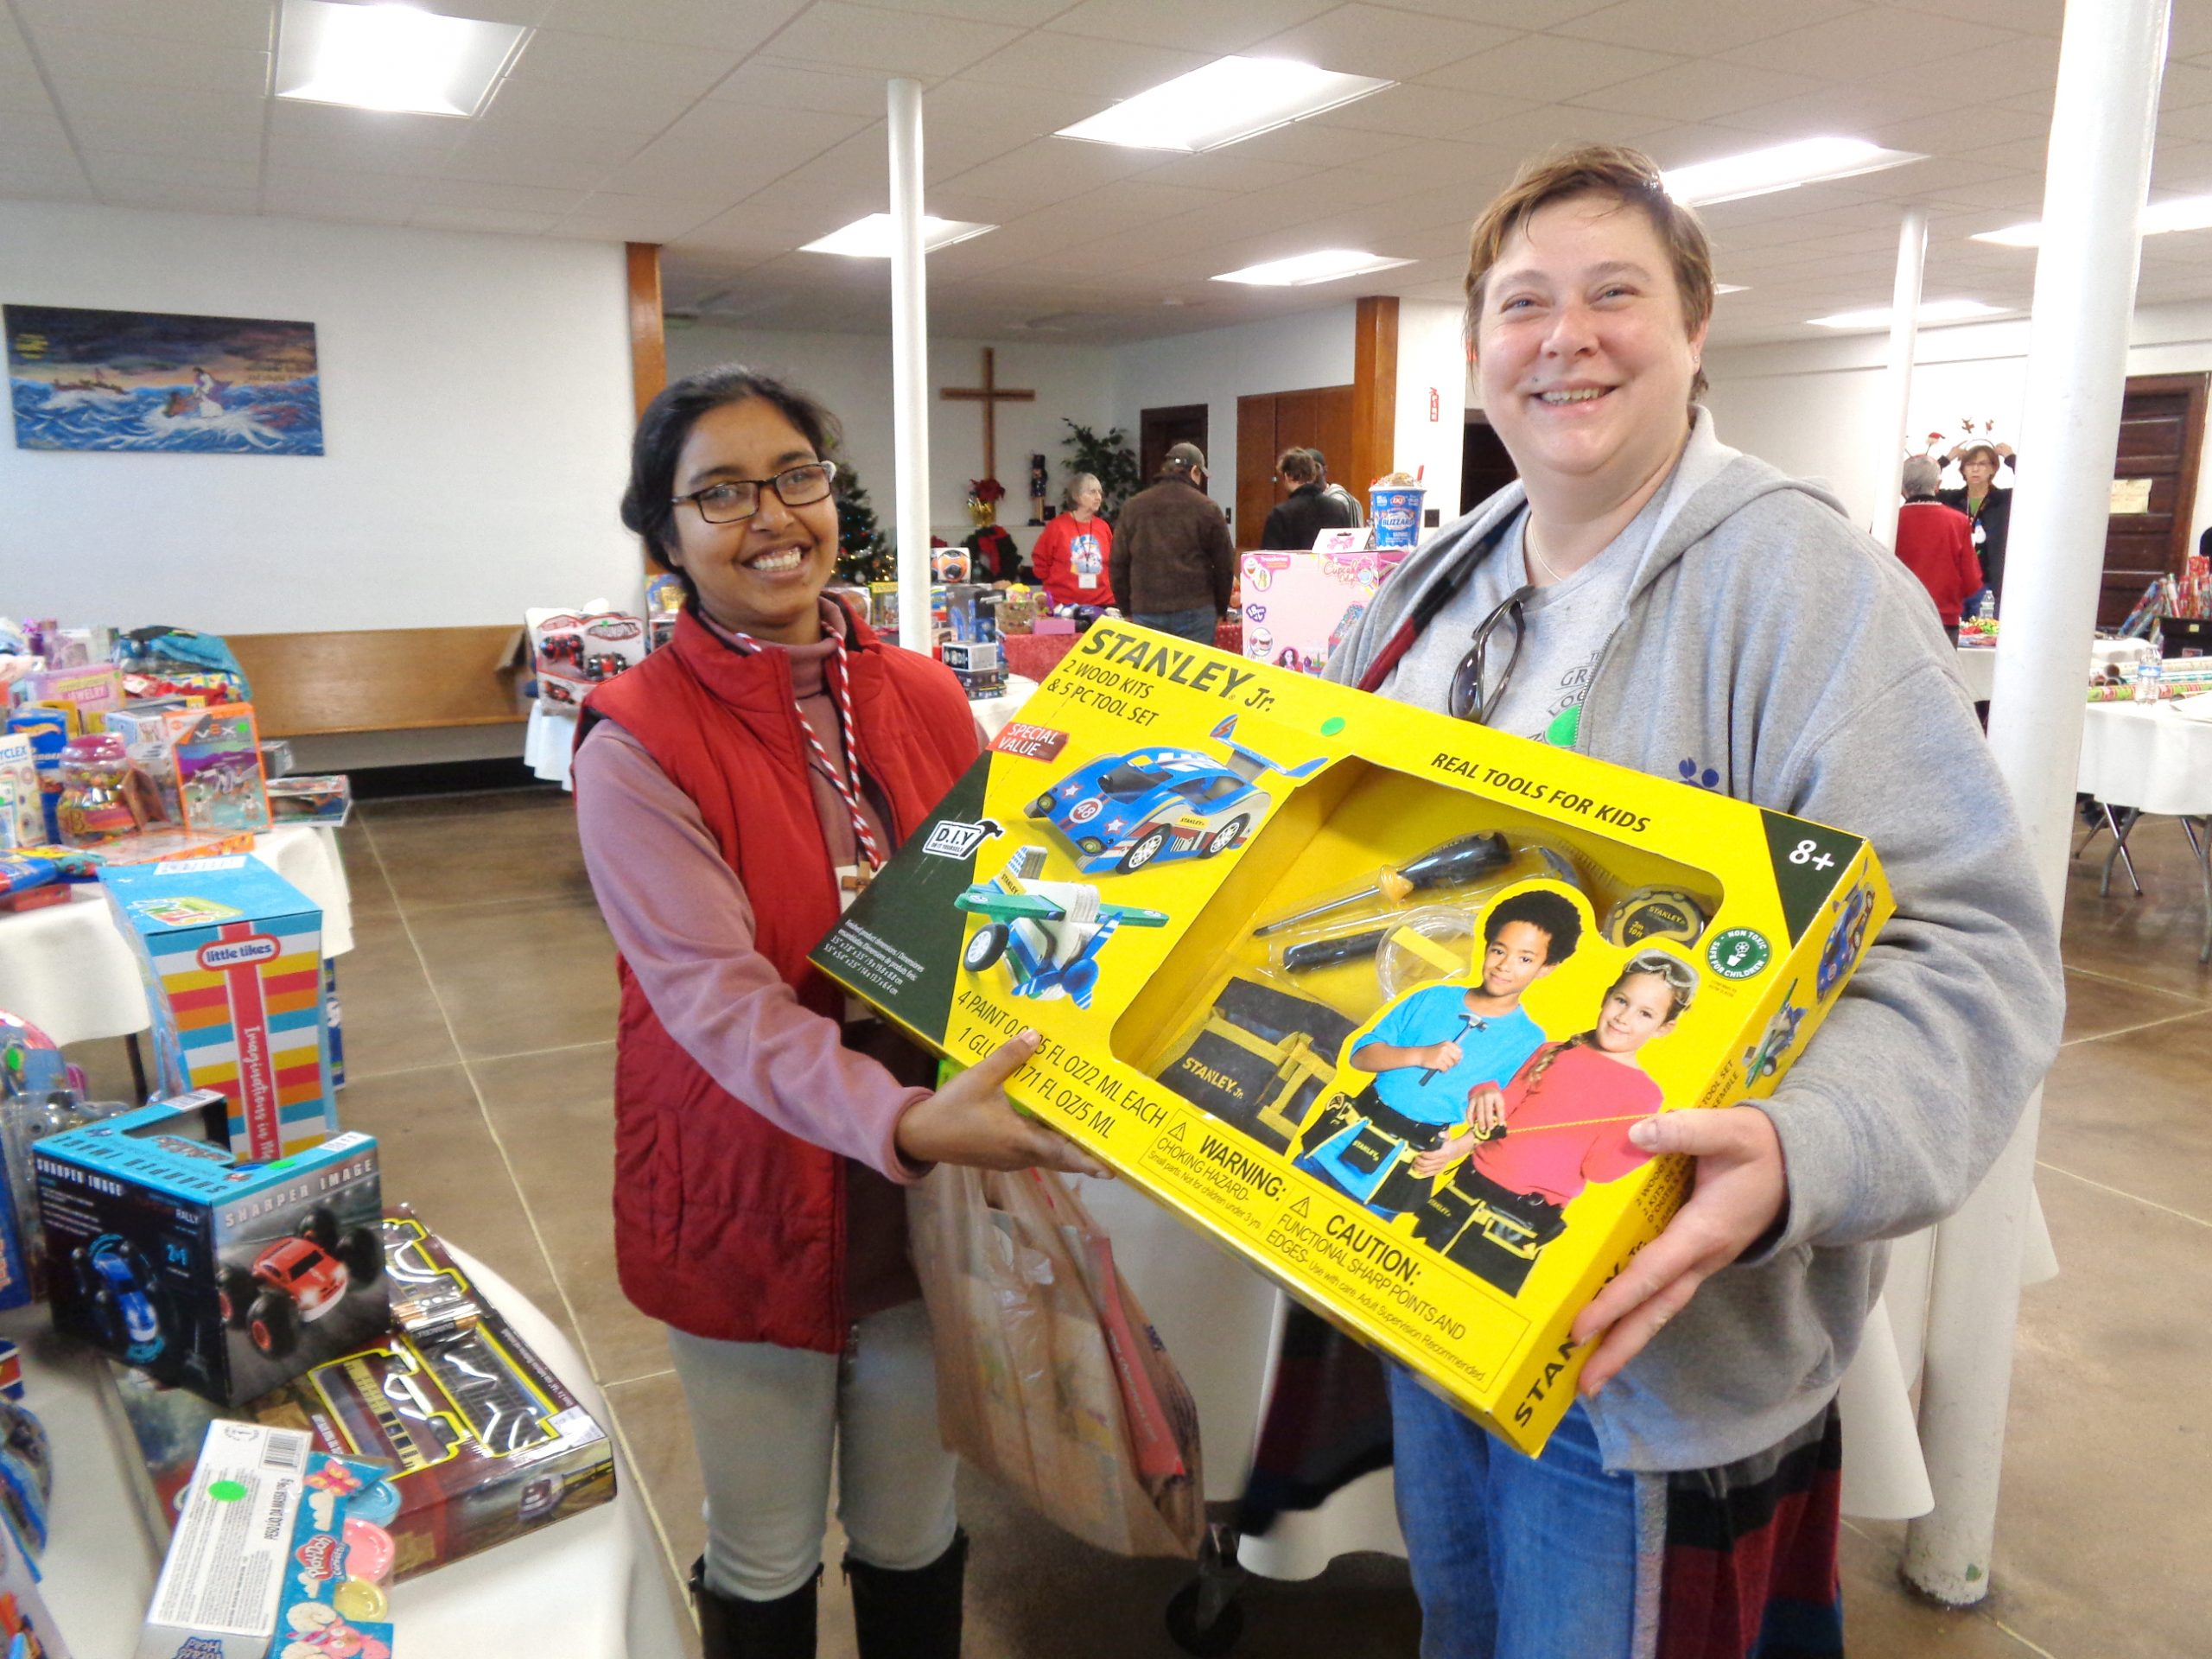 Sister Magdelana helps a mom sort through toys, games and books for a gift for her son.